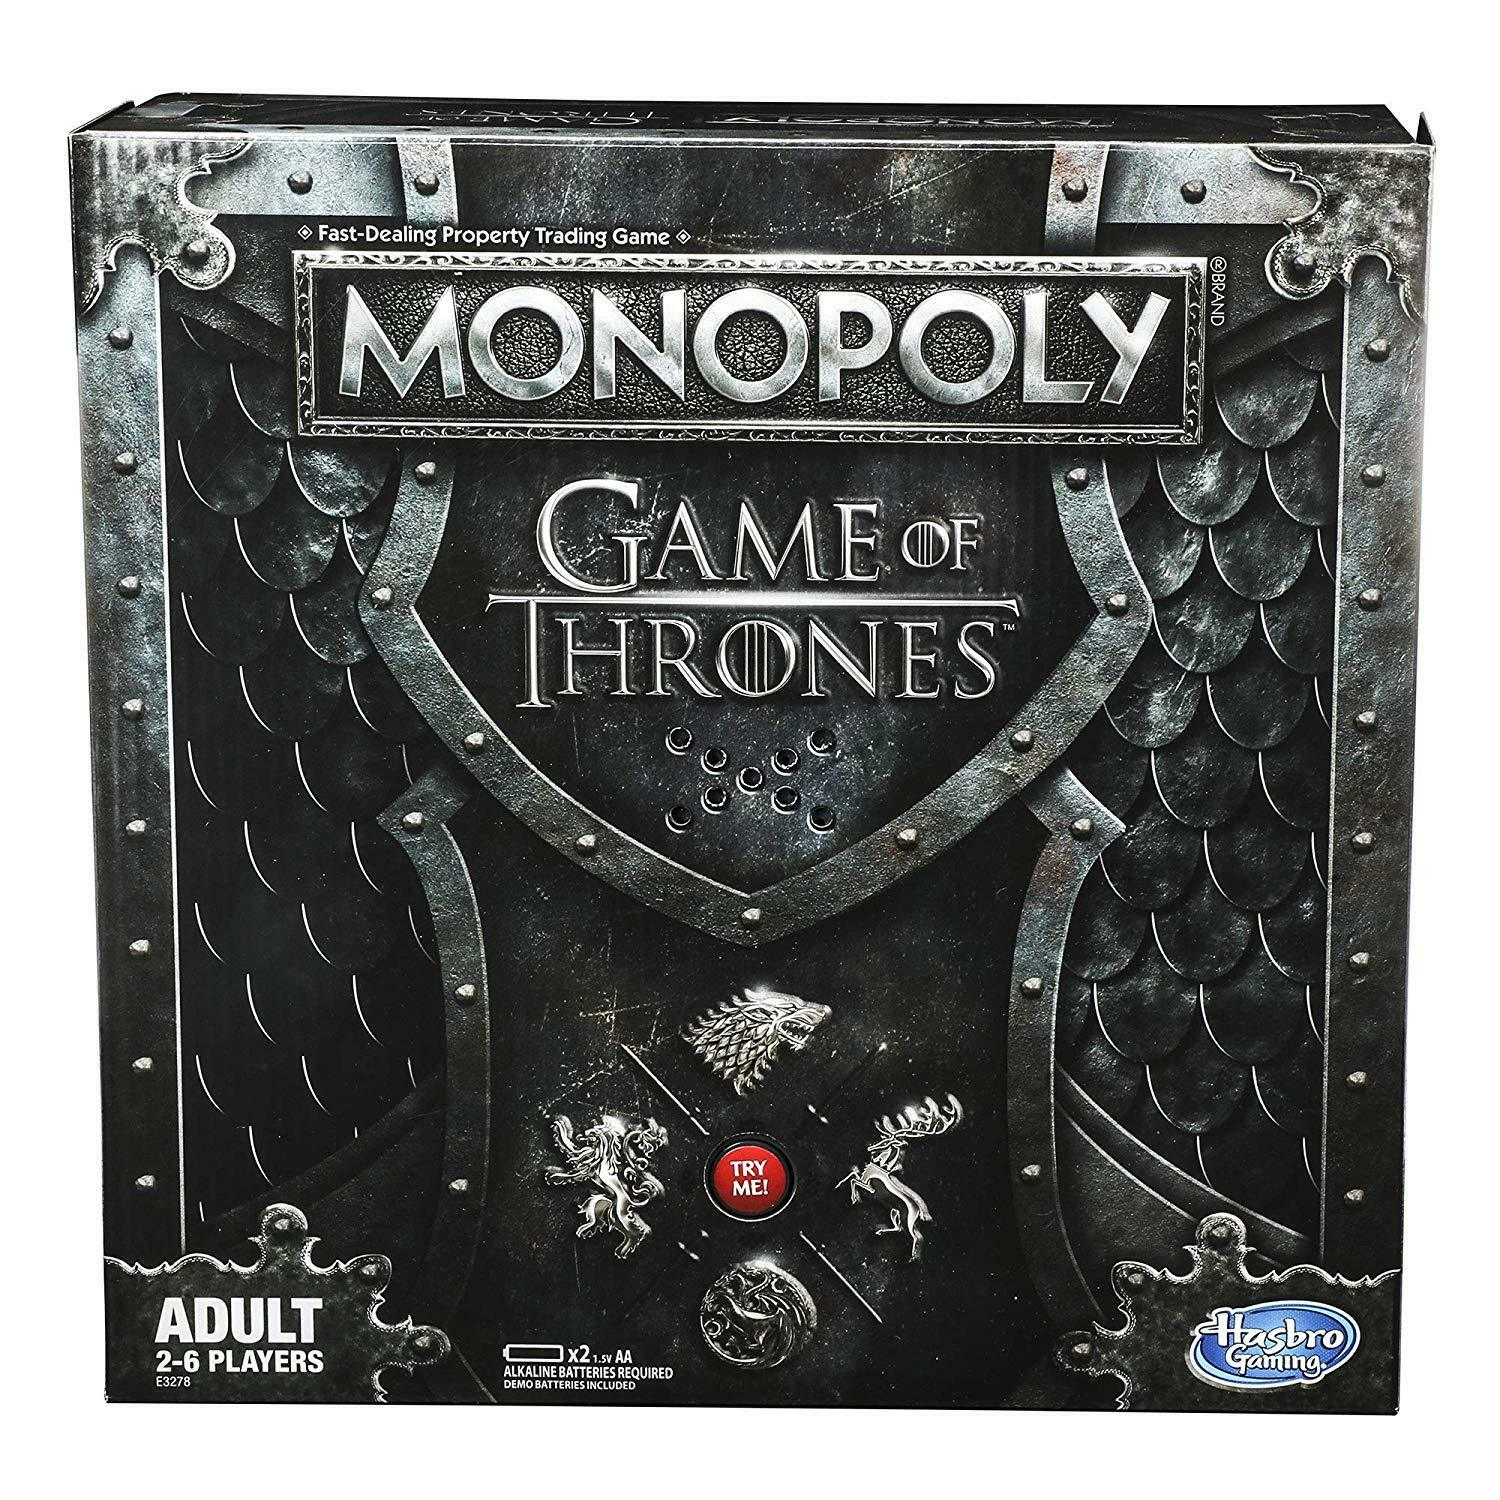 HASBRO MONOPOLY MONOPOLY MONOPOLY GAME OF THRONES BOARD GAME FOR